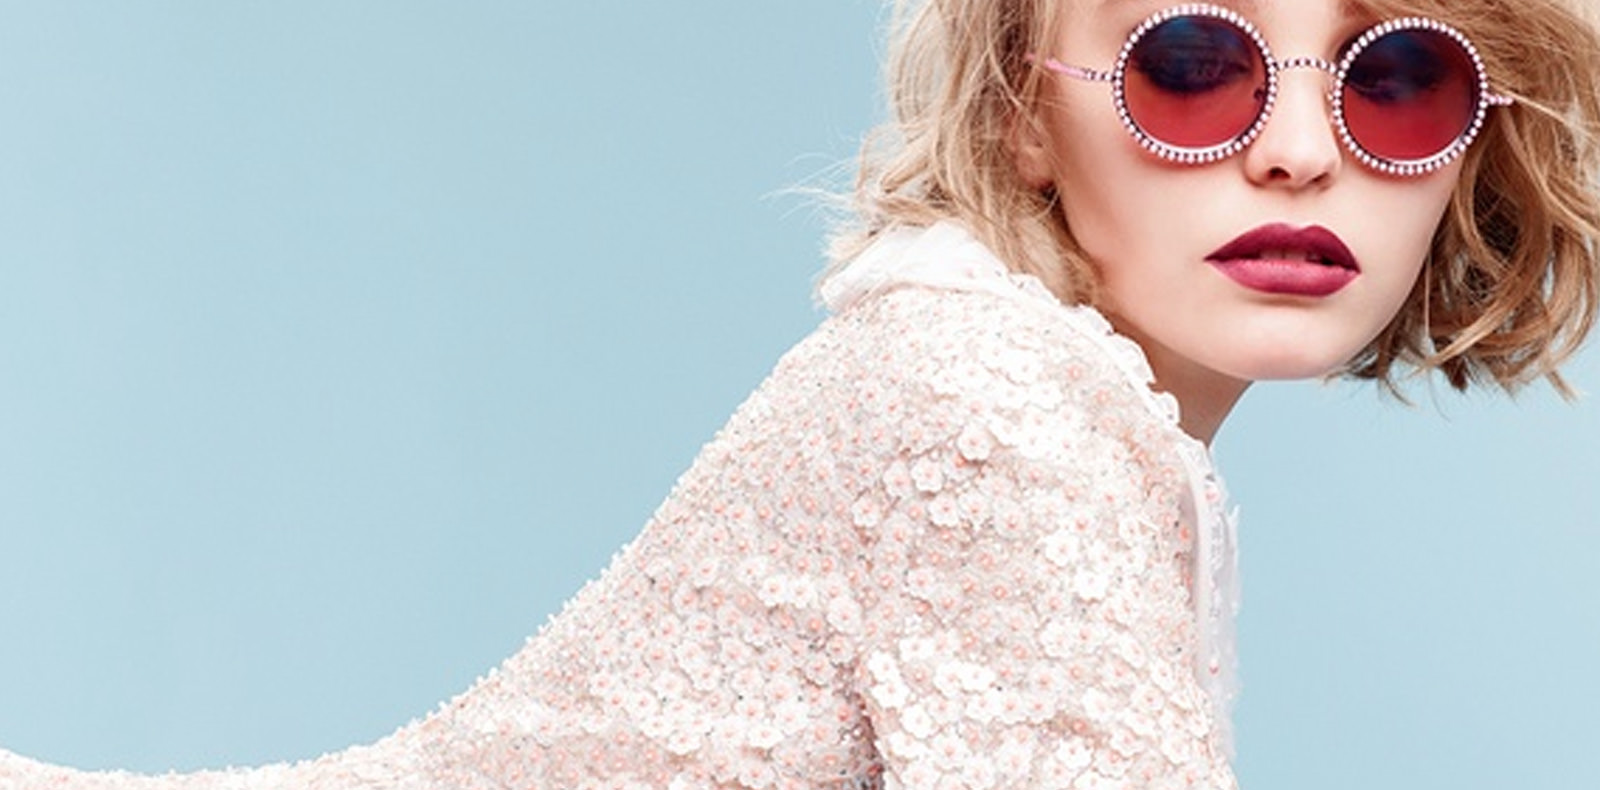 Lily-Rose Depp, who is she really?